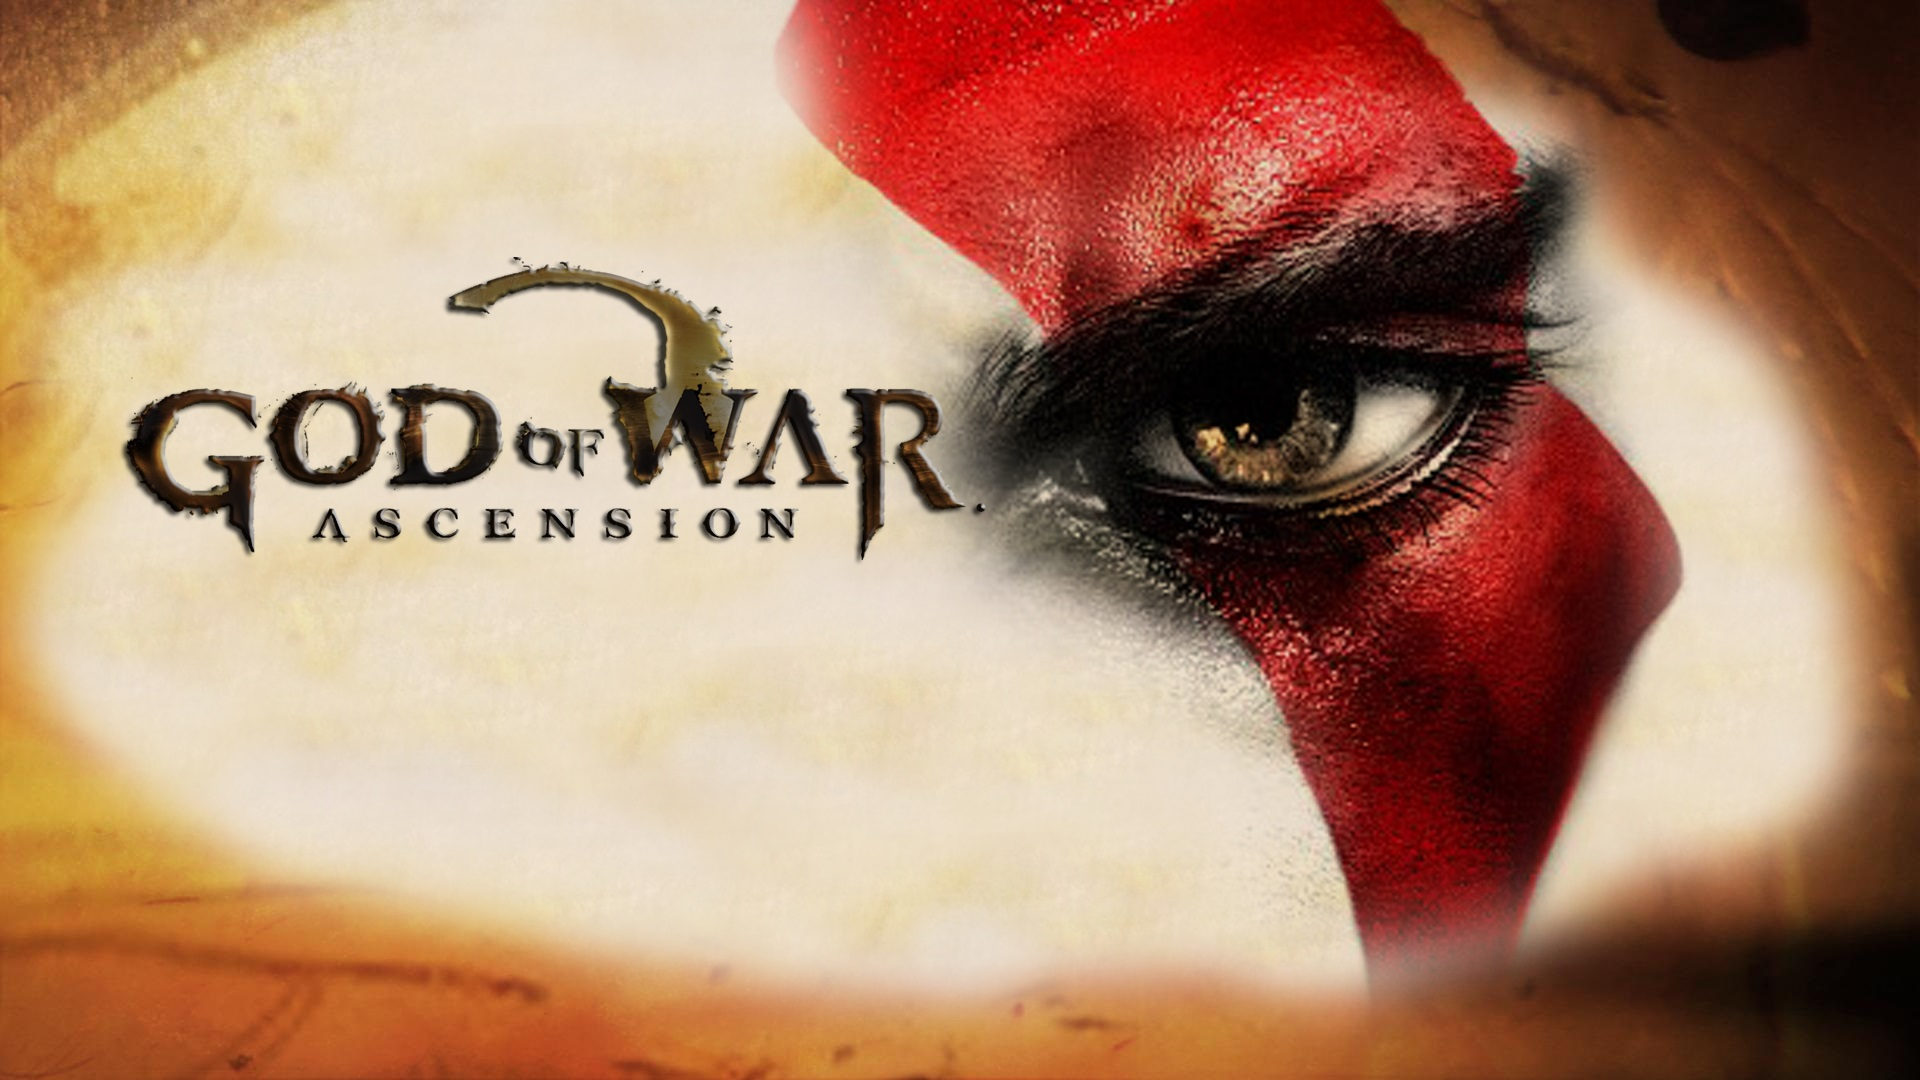 God of War Ascension wallpaper 8